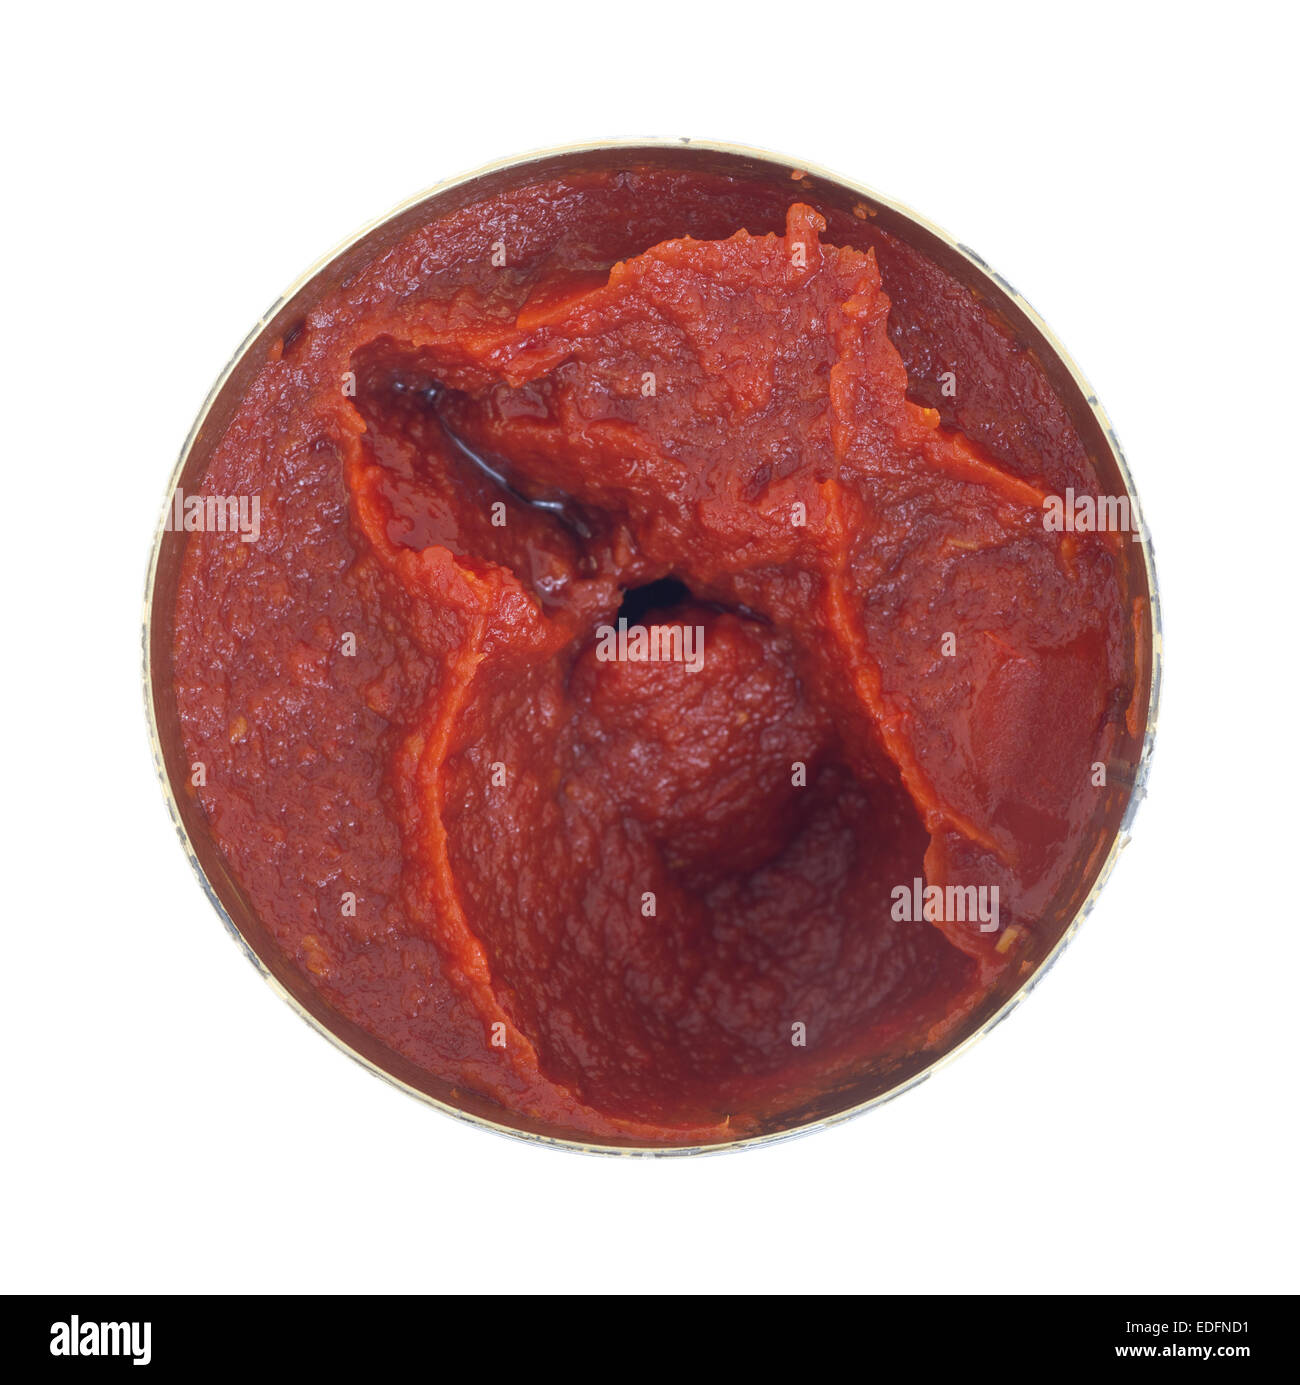 Top view of an opened can of tomato paste on a white background. - Stock Image